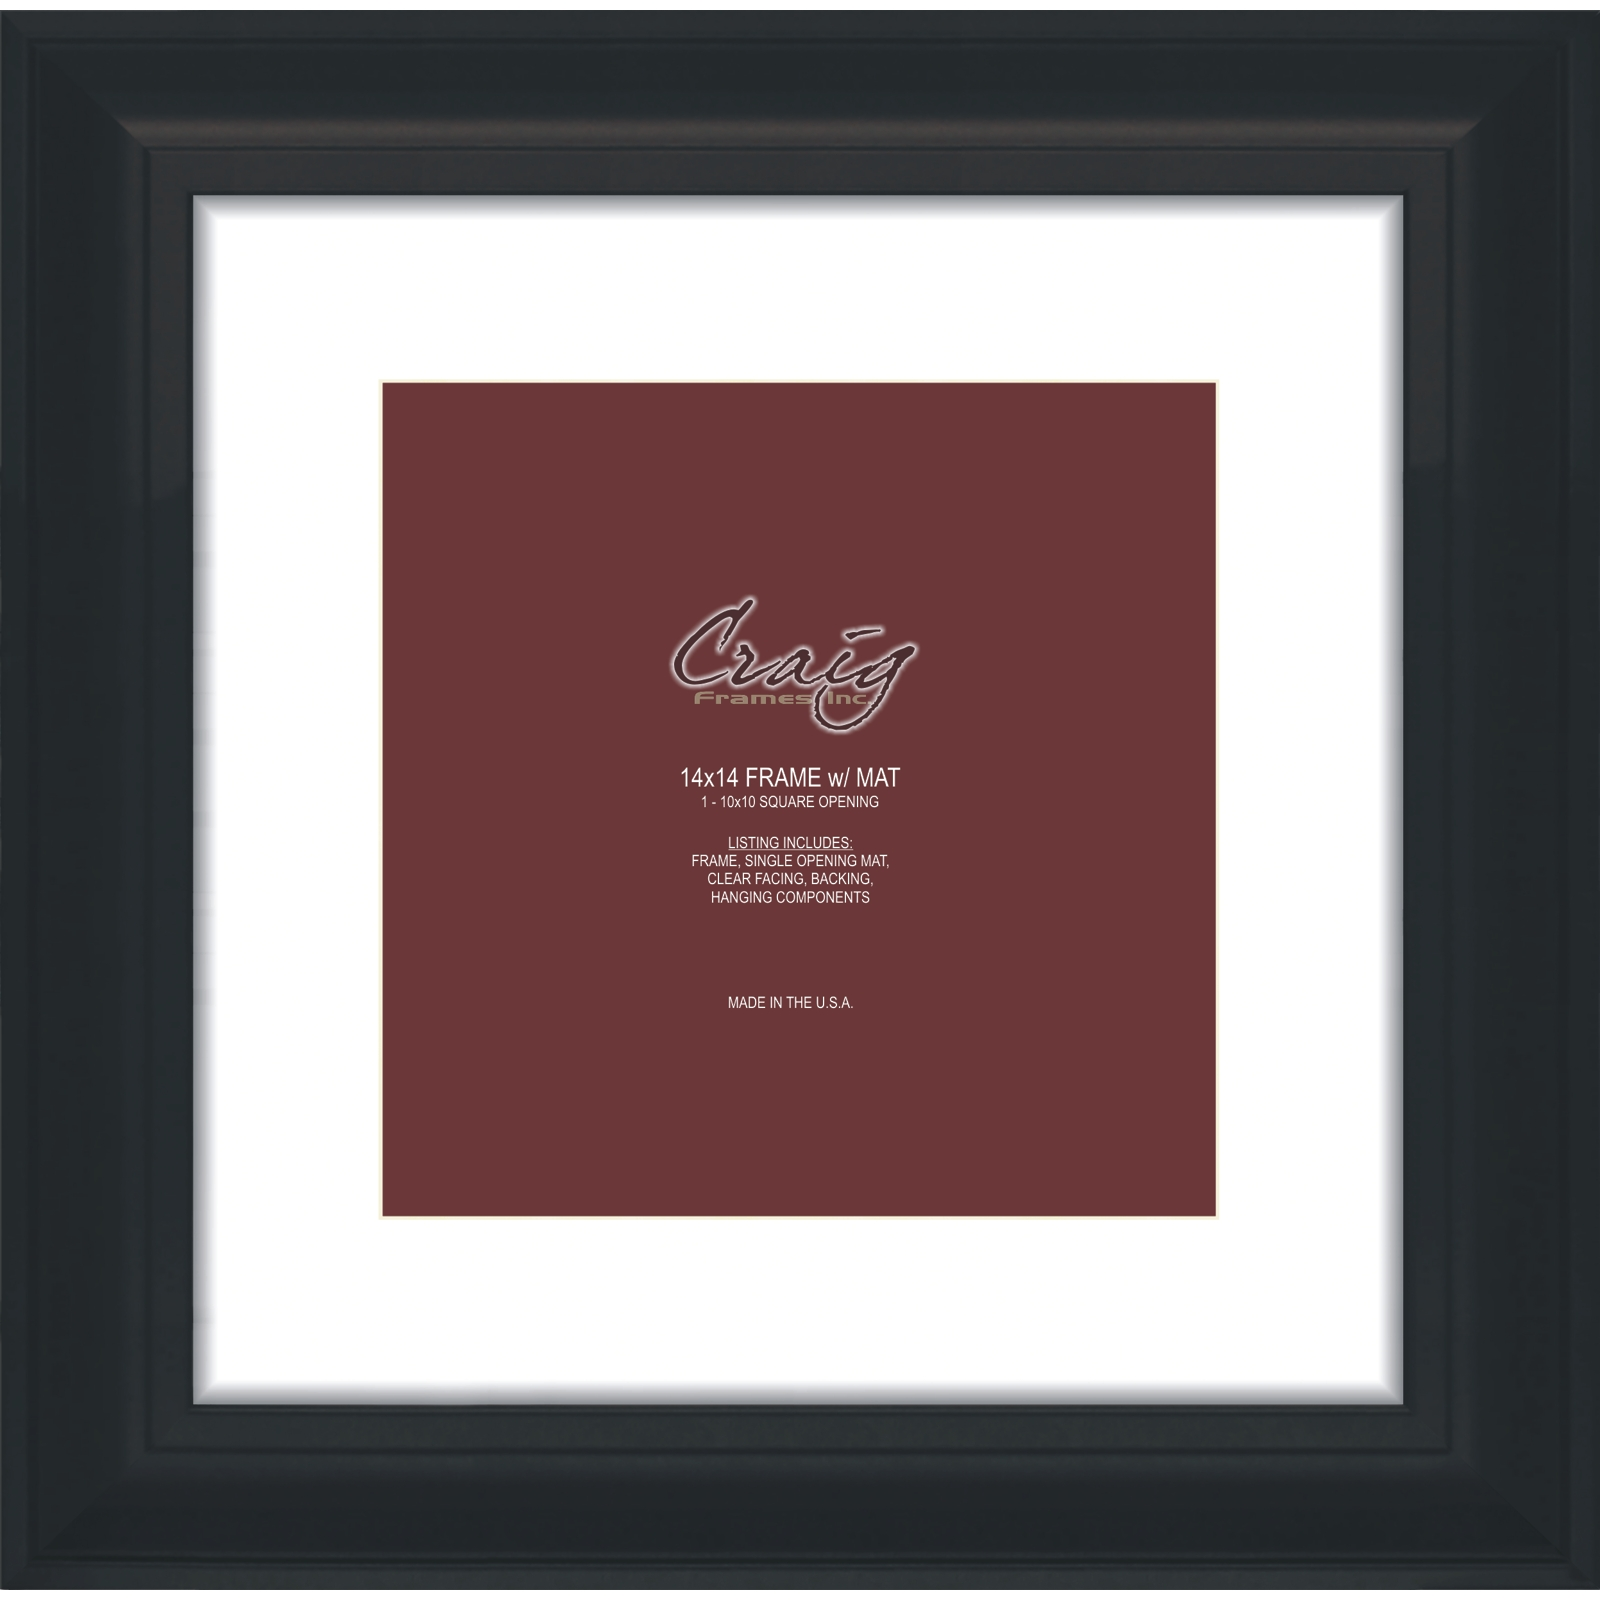 Craig Frames 14x14 2 Black Picture Frame White Mat Opening For